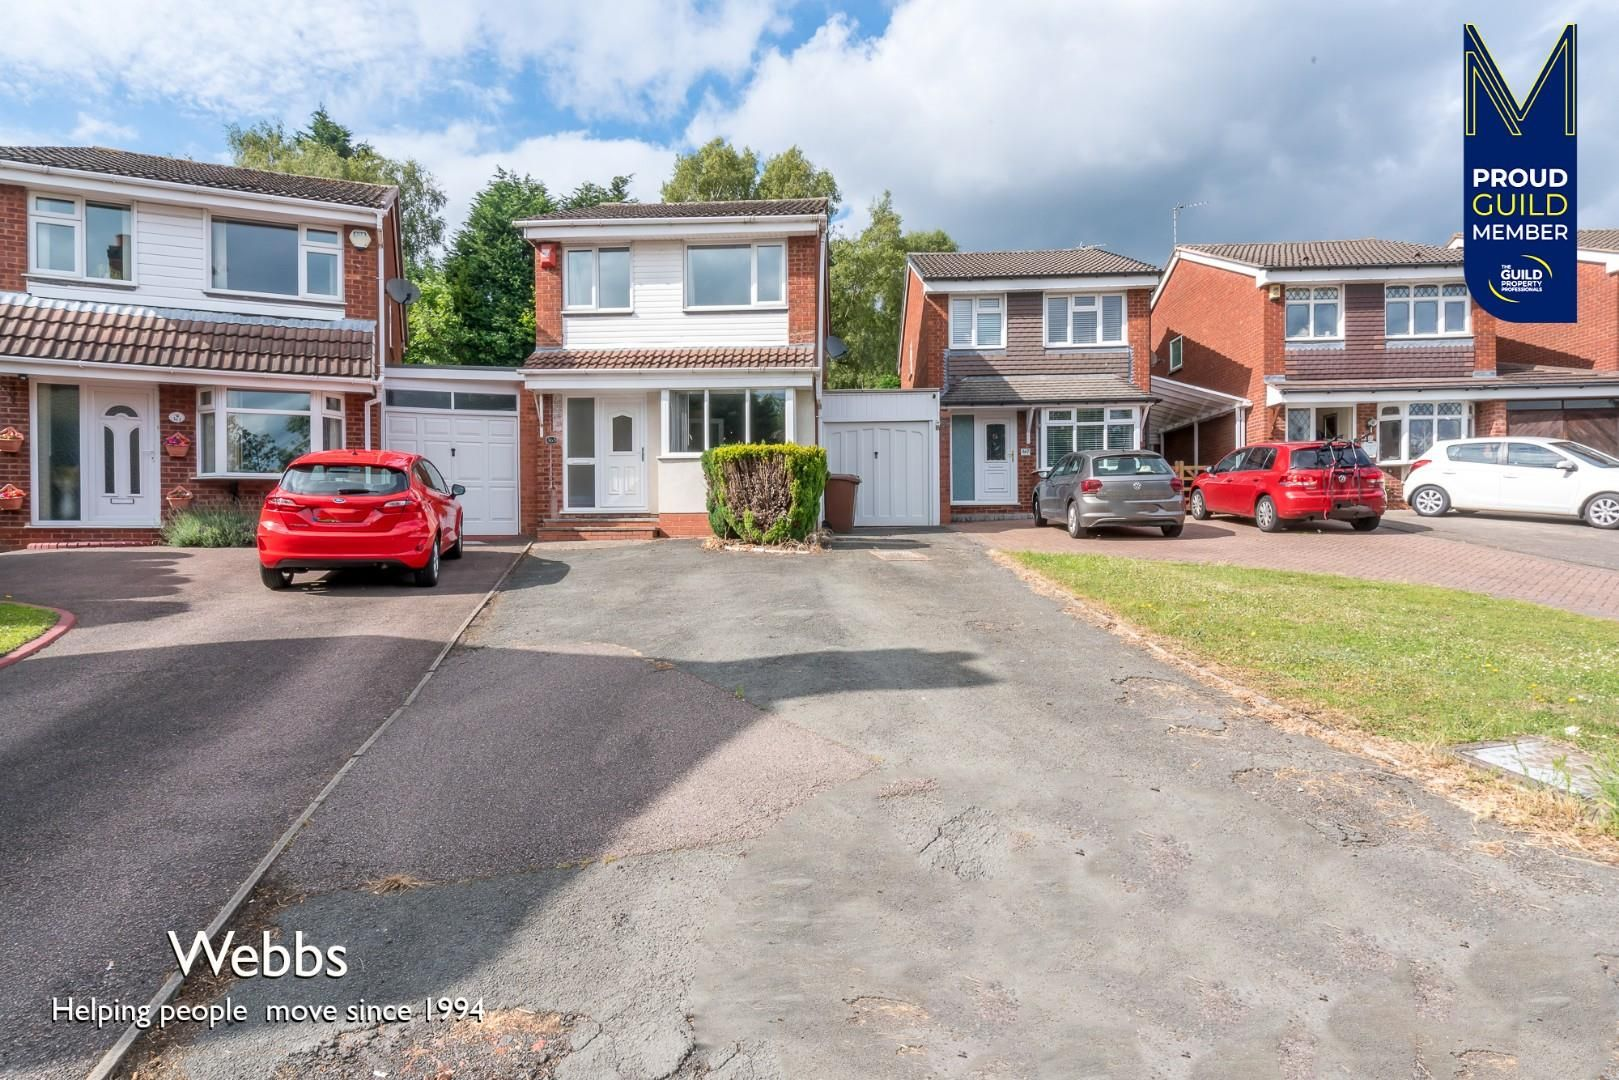 Property photo 1 of 22. Littleworth Road, Hednesford